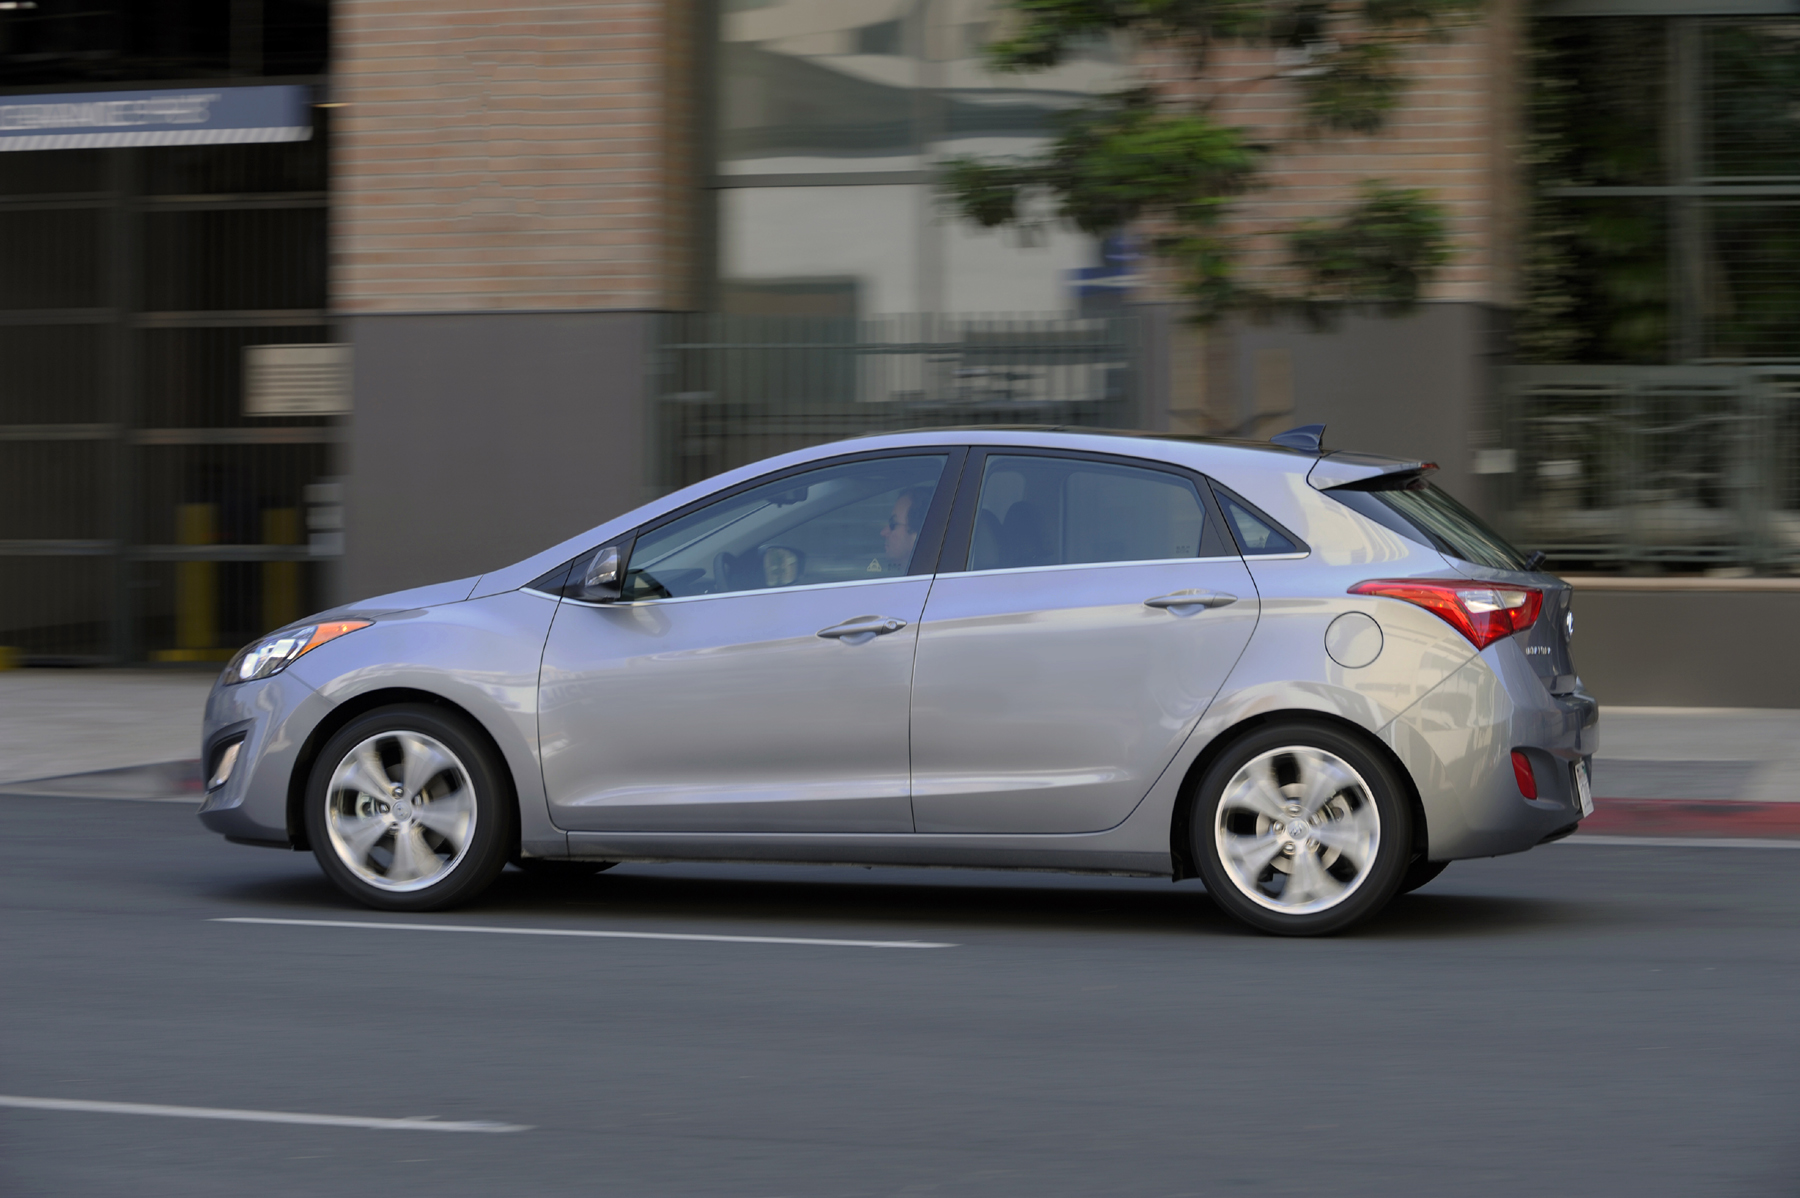 Hyundai Elantra Lineup Expands with 2013 GT Hatch Down the Road